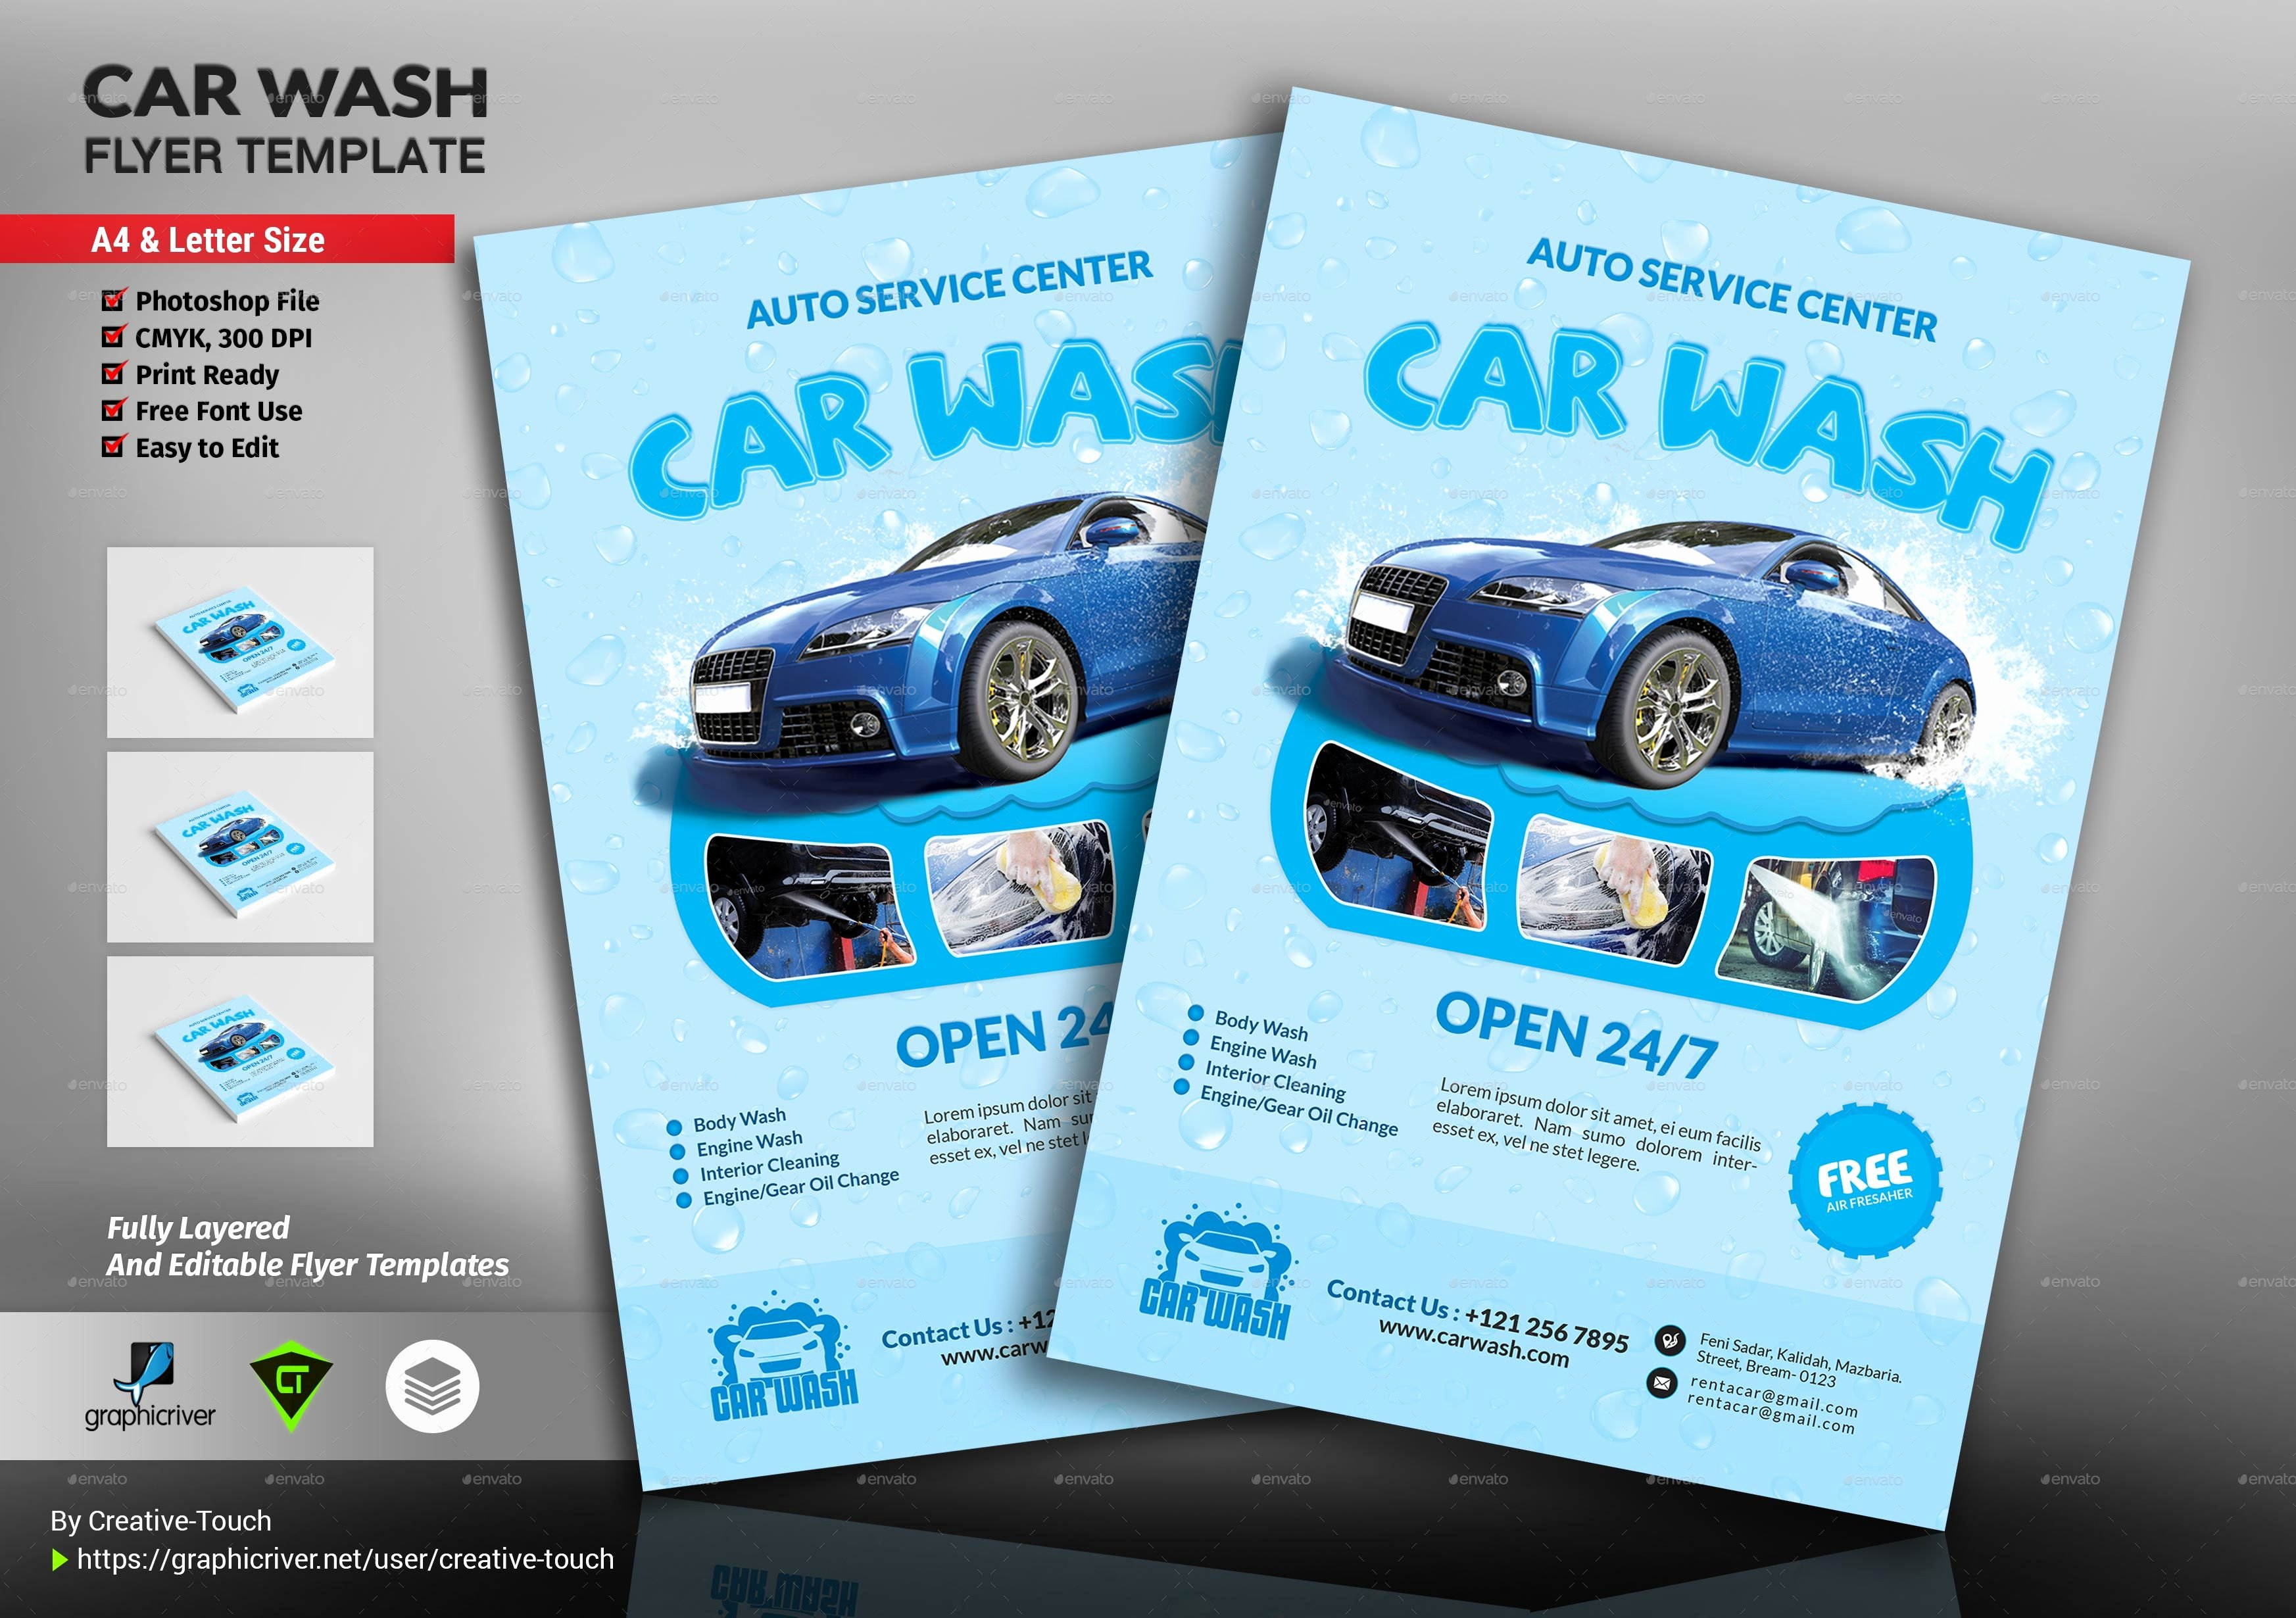 Car Wash Flyers Template Beautiful Car Wash Flyer Template by Creative touch